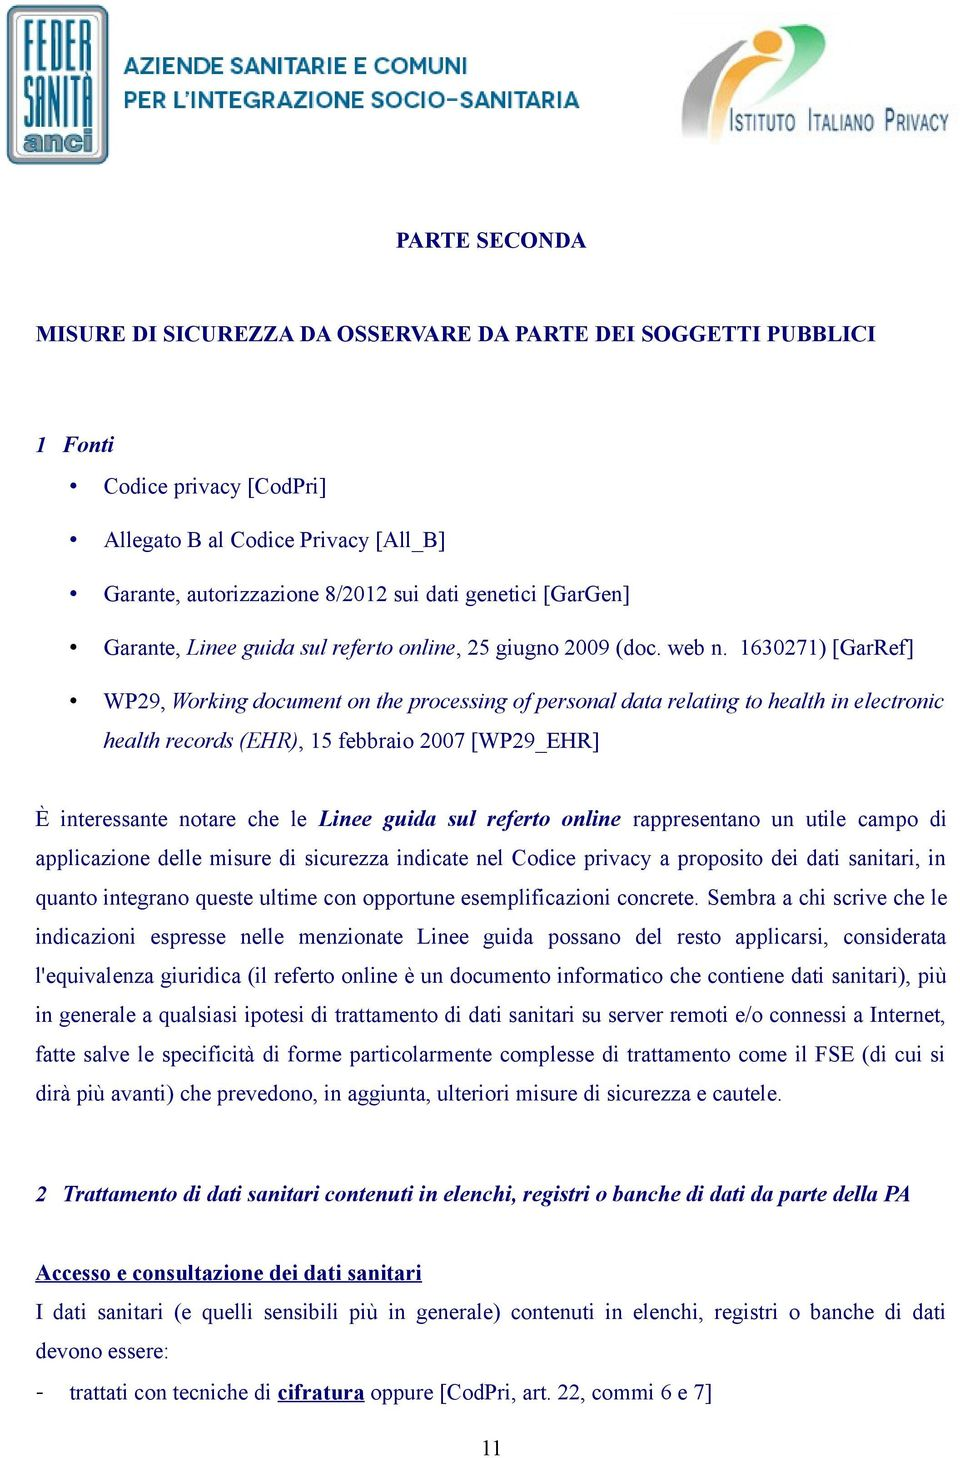 1630271) [GarRef] WP29, Working document on the processing of personal data relating to health in electronic health records (EHR), 15 febbraio 2007 [WP29_EHR] È interessante notare che le Linee guida